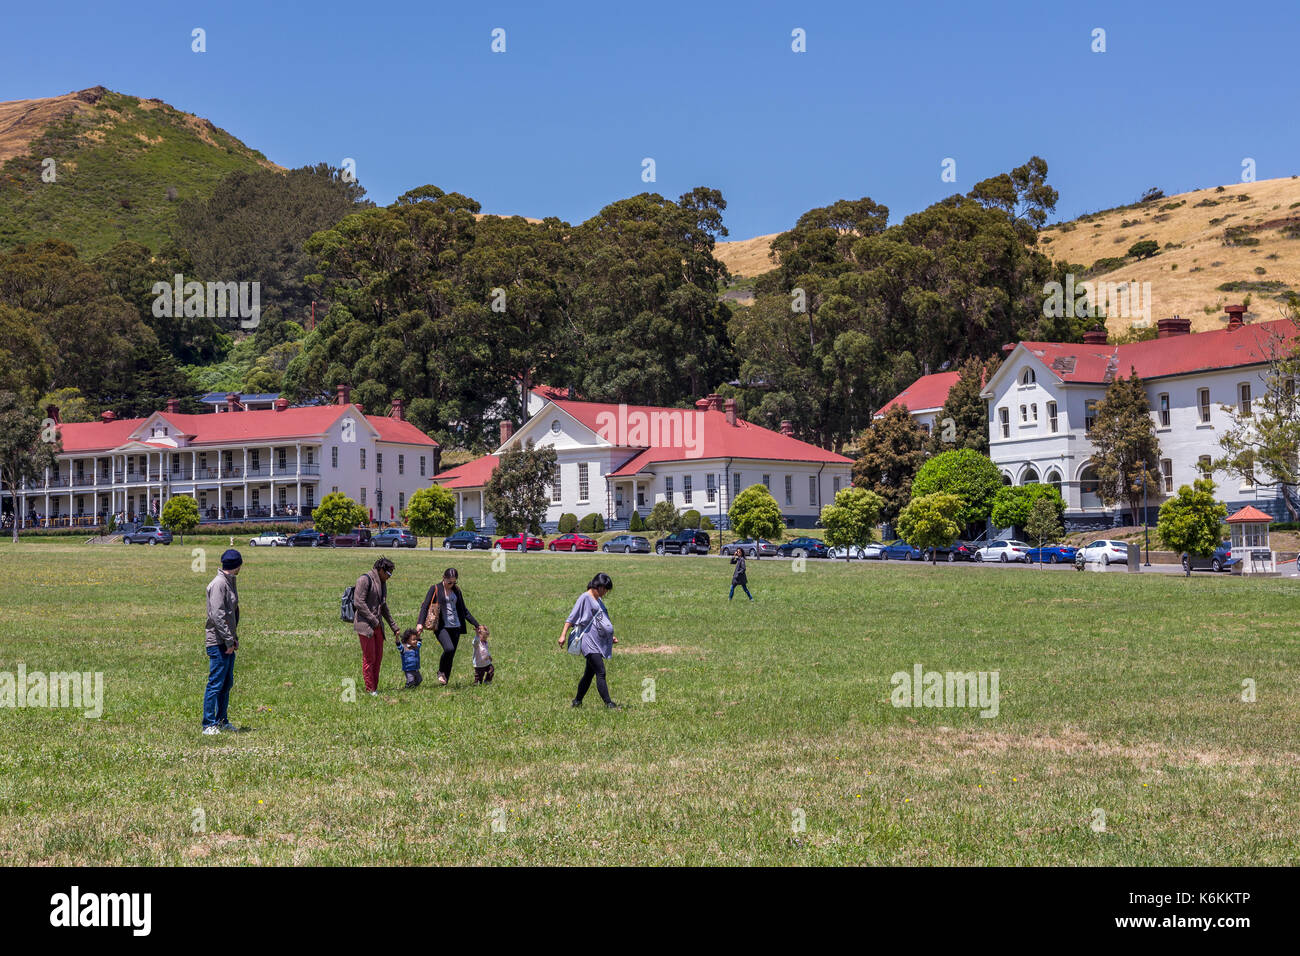 people, families, tourists, visiting, Cavallo Point Lodge, The Lodge at the Golden Gate, Fort Baker, city of Sausalito, Marin County, California - Stock Image